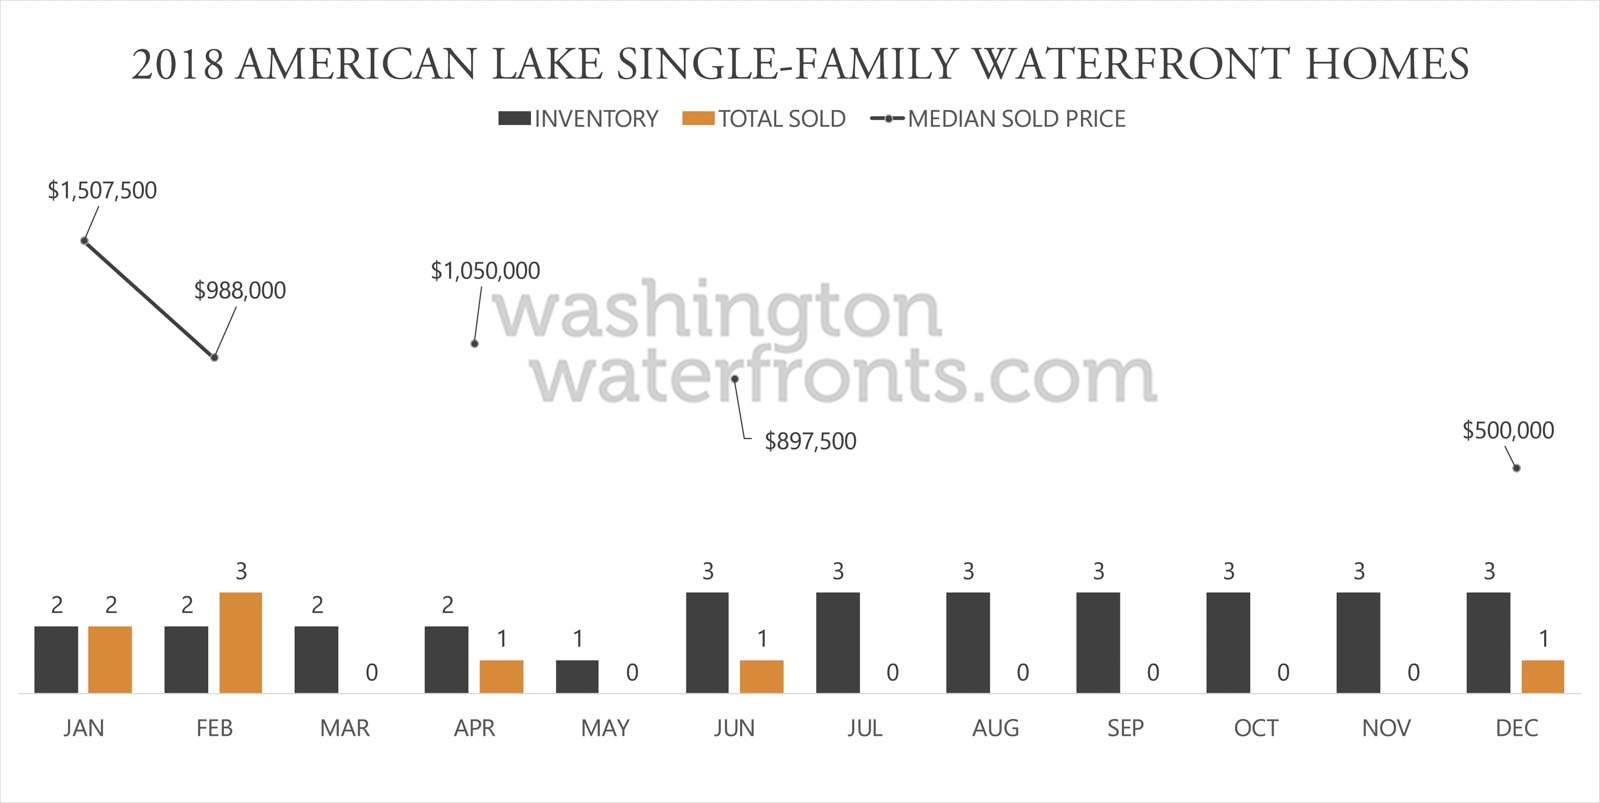 American Lake Waterfront Inventory